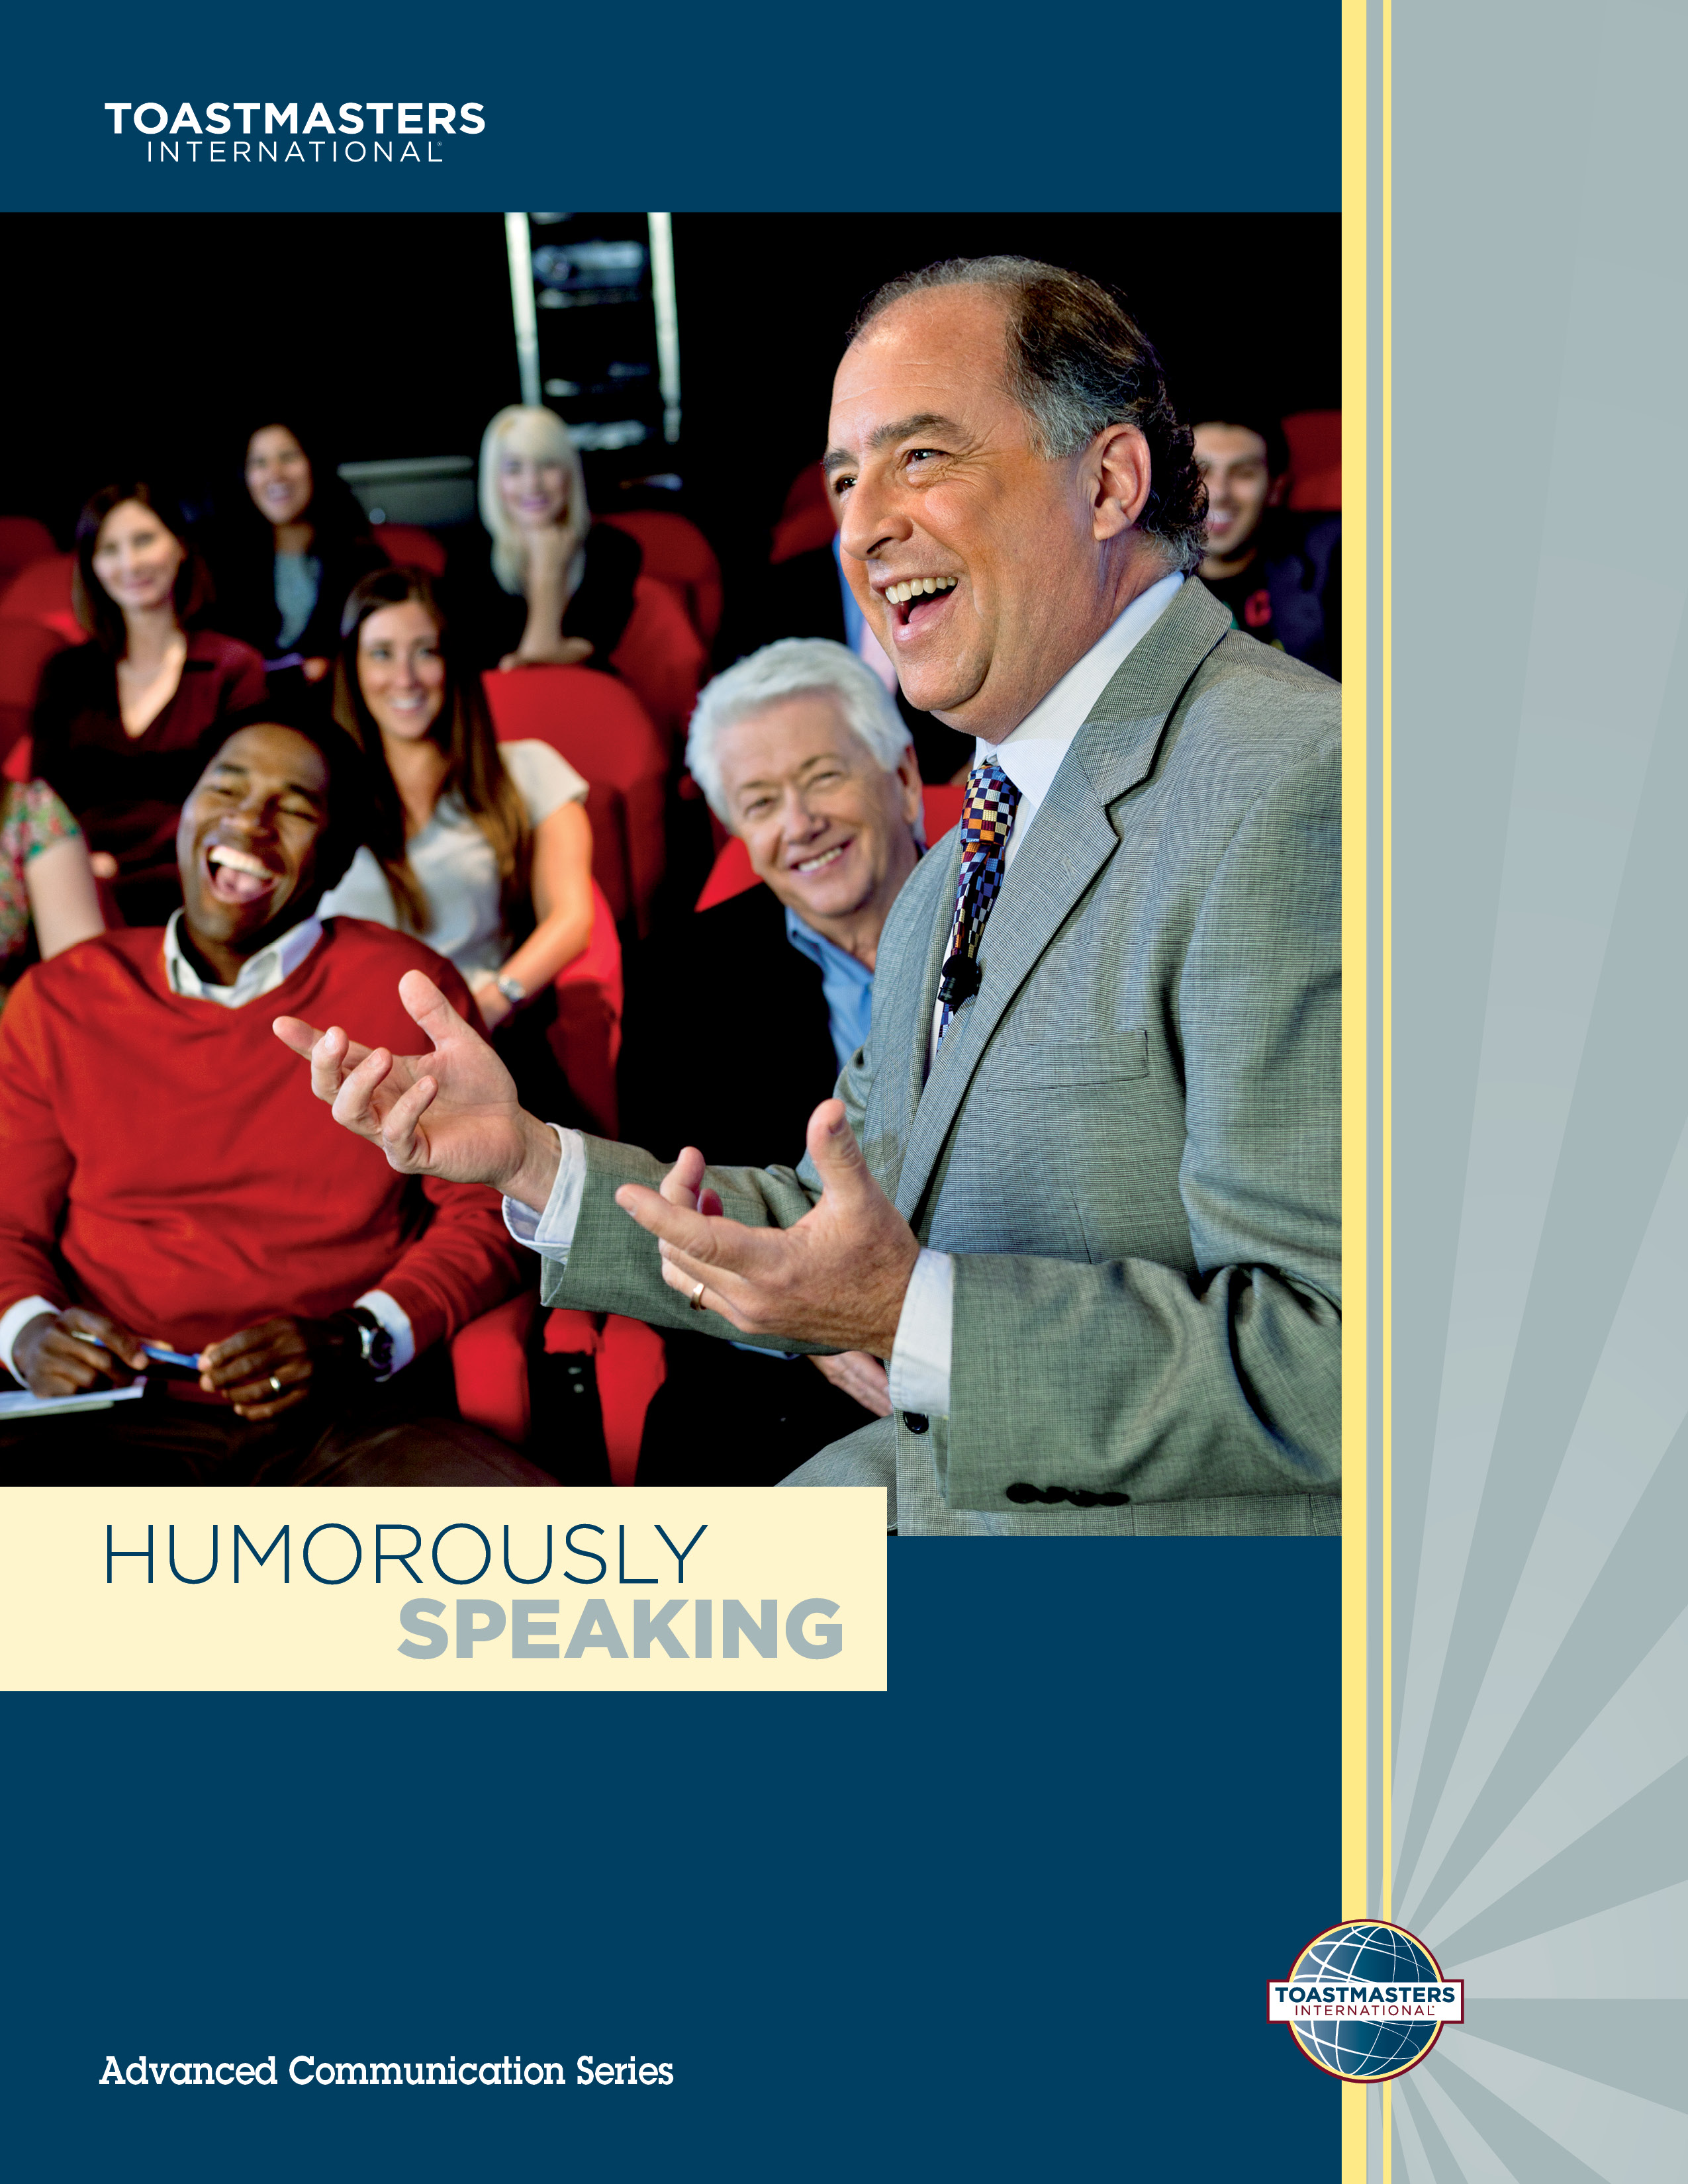 Humorously Speaking Manual